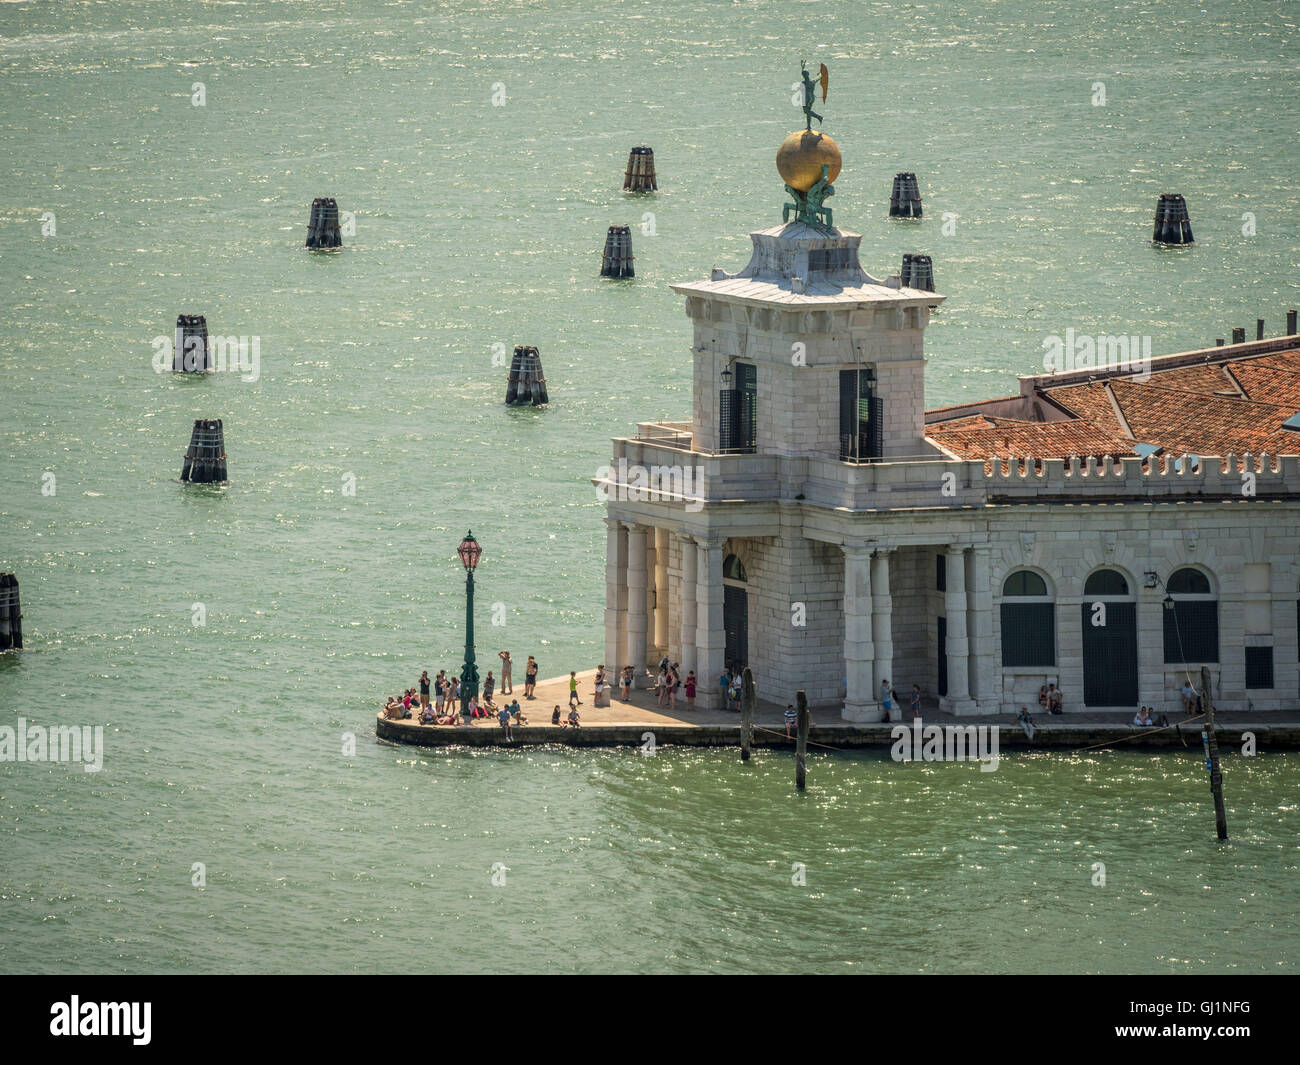 Aerial view of Punta della Dogana with it's roof top statue of Fortuna, Dogana da Mar, Venice, Italy - Stock Image